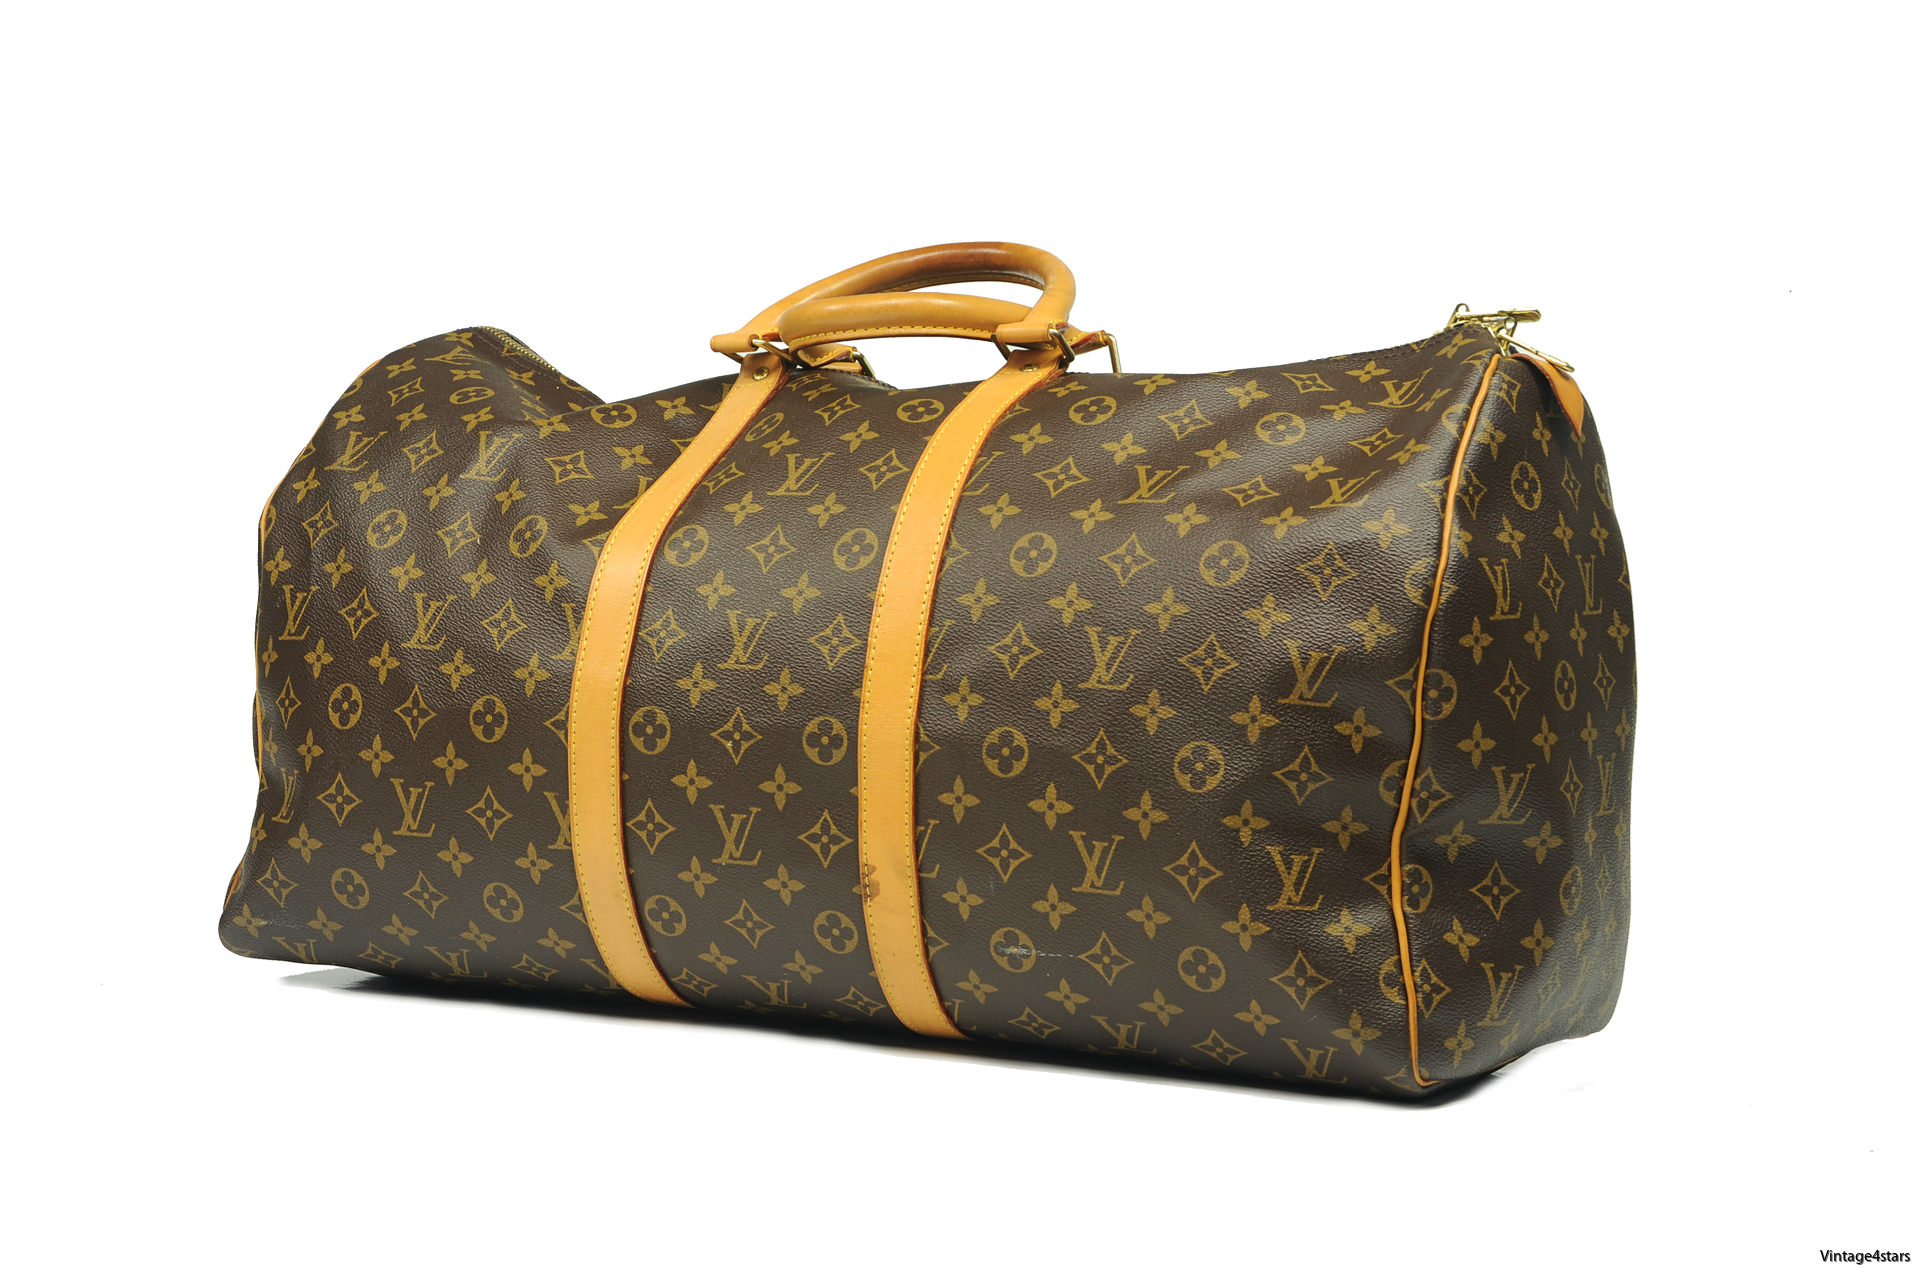 Louis Vuitton Keepall 55 3a